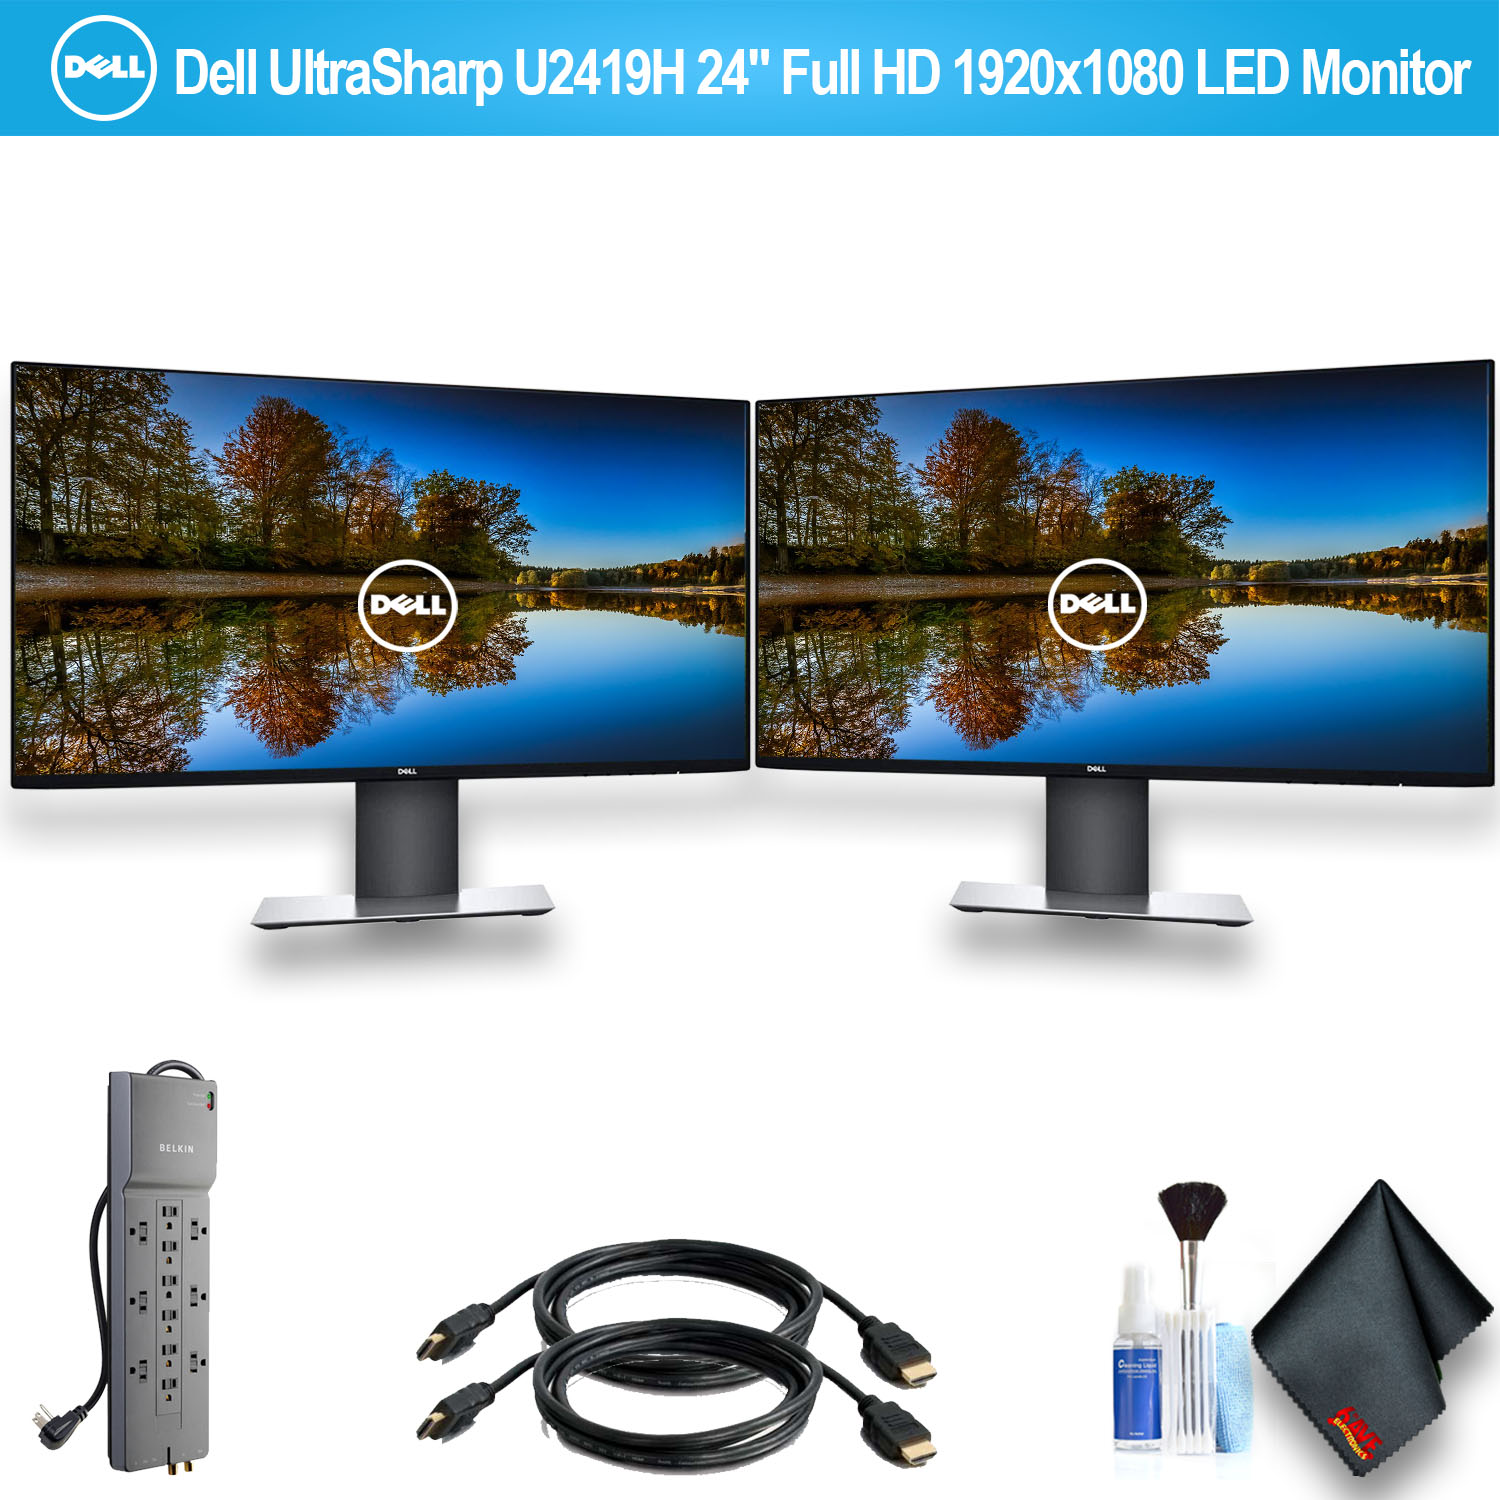 """Dell UltraSharp U2419H 24"""" Full HD 1920x1080 LED monitor Set with 1 - Belkin PowerStrip and 2 - HDMI Cables"""